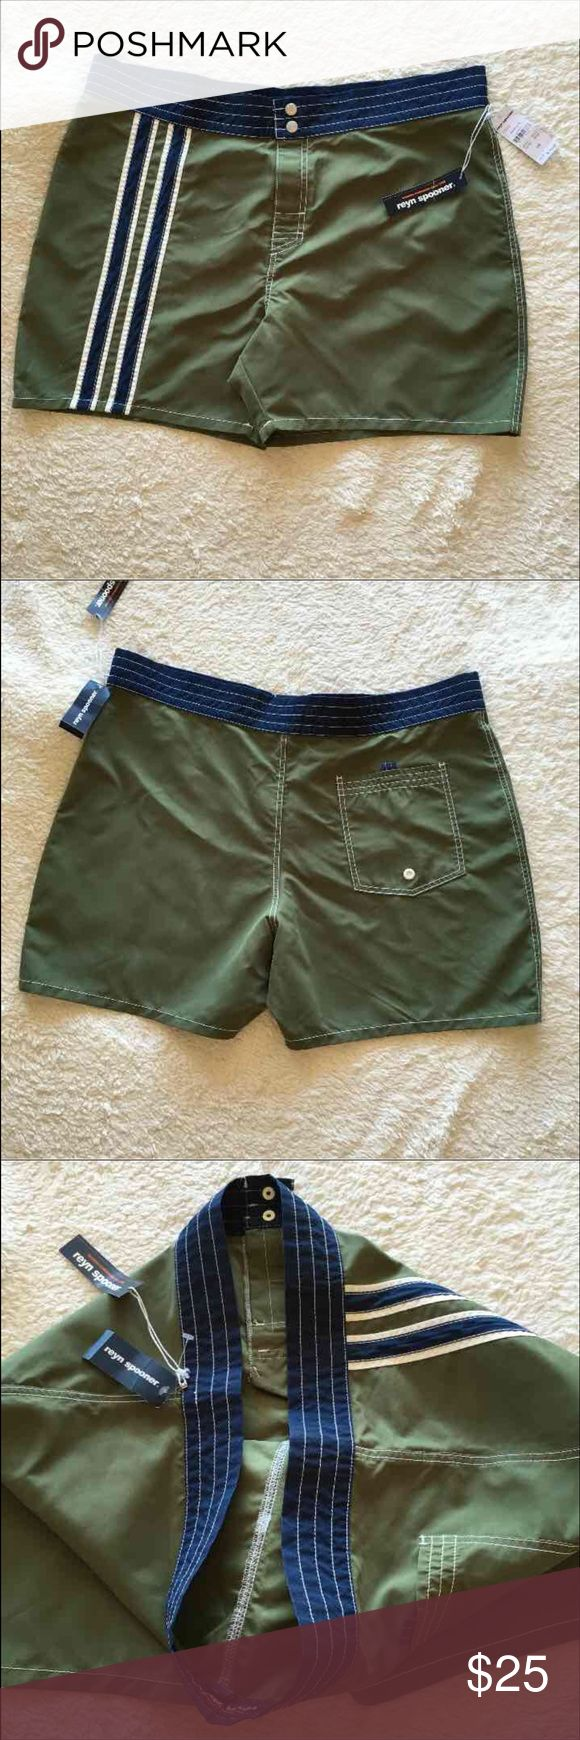 NWT Reyn Spooner Hawaiian Surfboard Short Size 38 New with tag. Men's surfboard short. Style# R210. 100% polyester. Size 38. Waist laying flat 20 1/2'. Rise 12 1/2'. Inseam 4 1/2'. Please check some of my items you might find what you are looking for in good quality and very affordable price Reyn Spooner Shorts Athletic